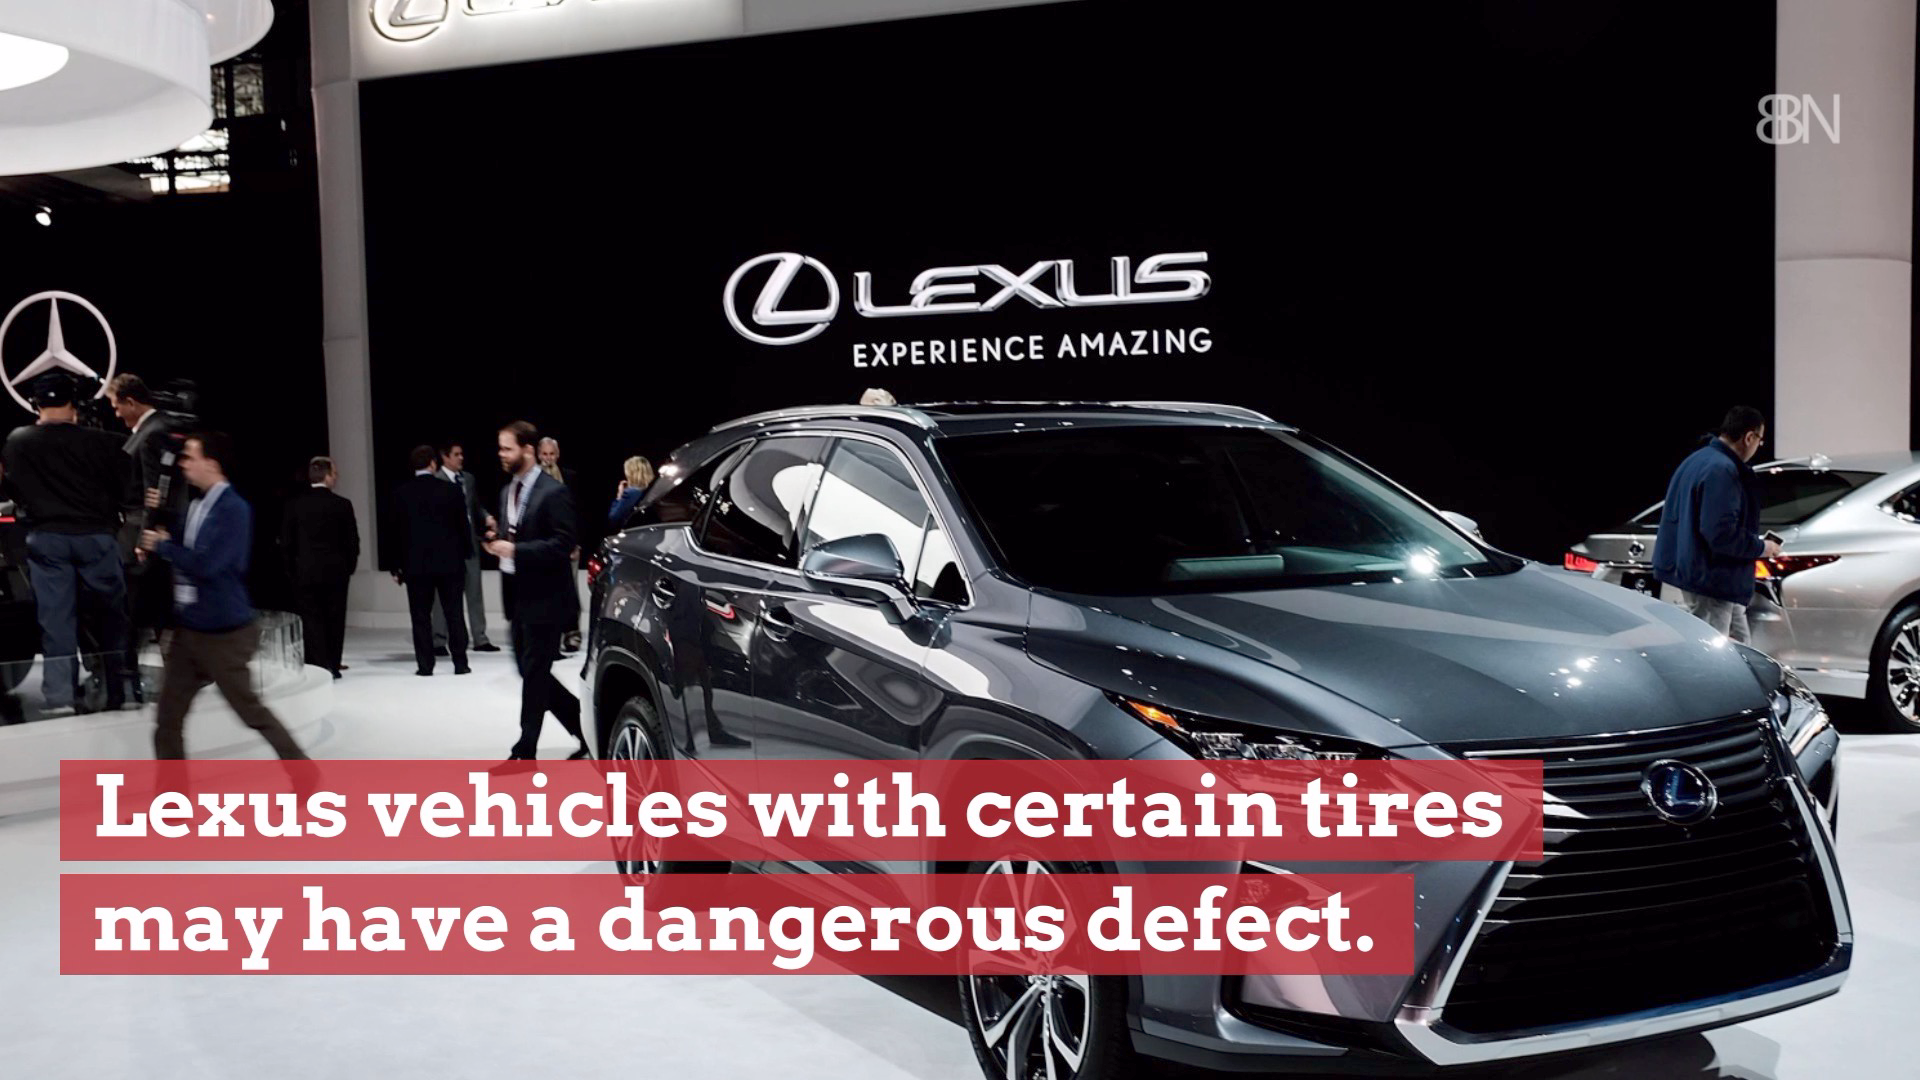 Beware: Your Lexus Vehicle Could Have A Serious Defect